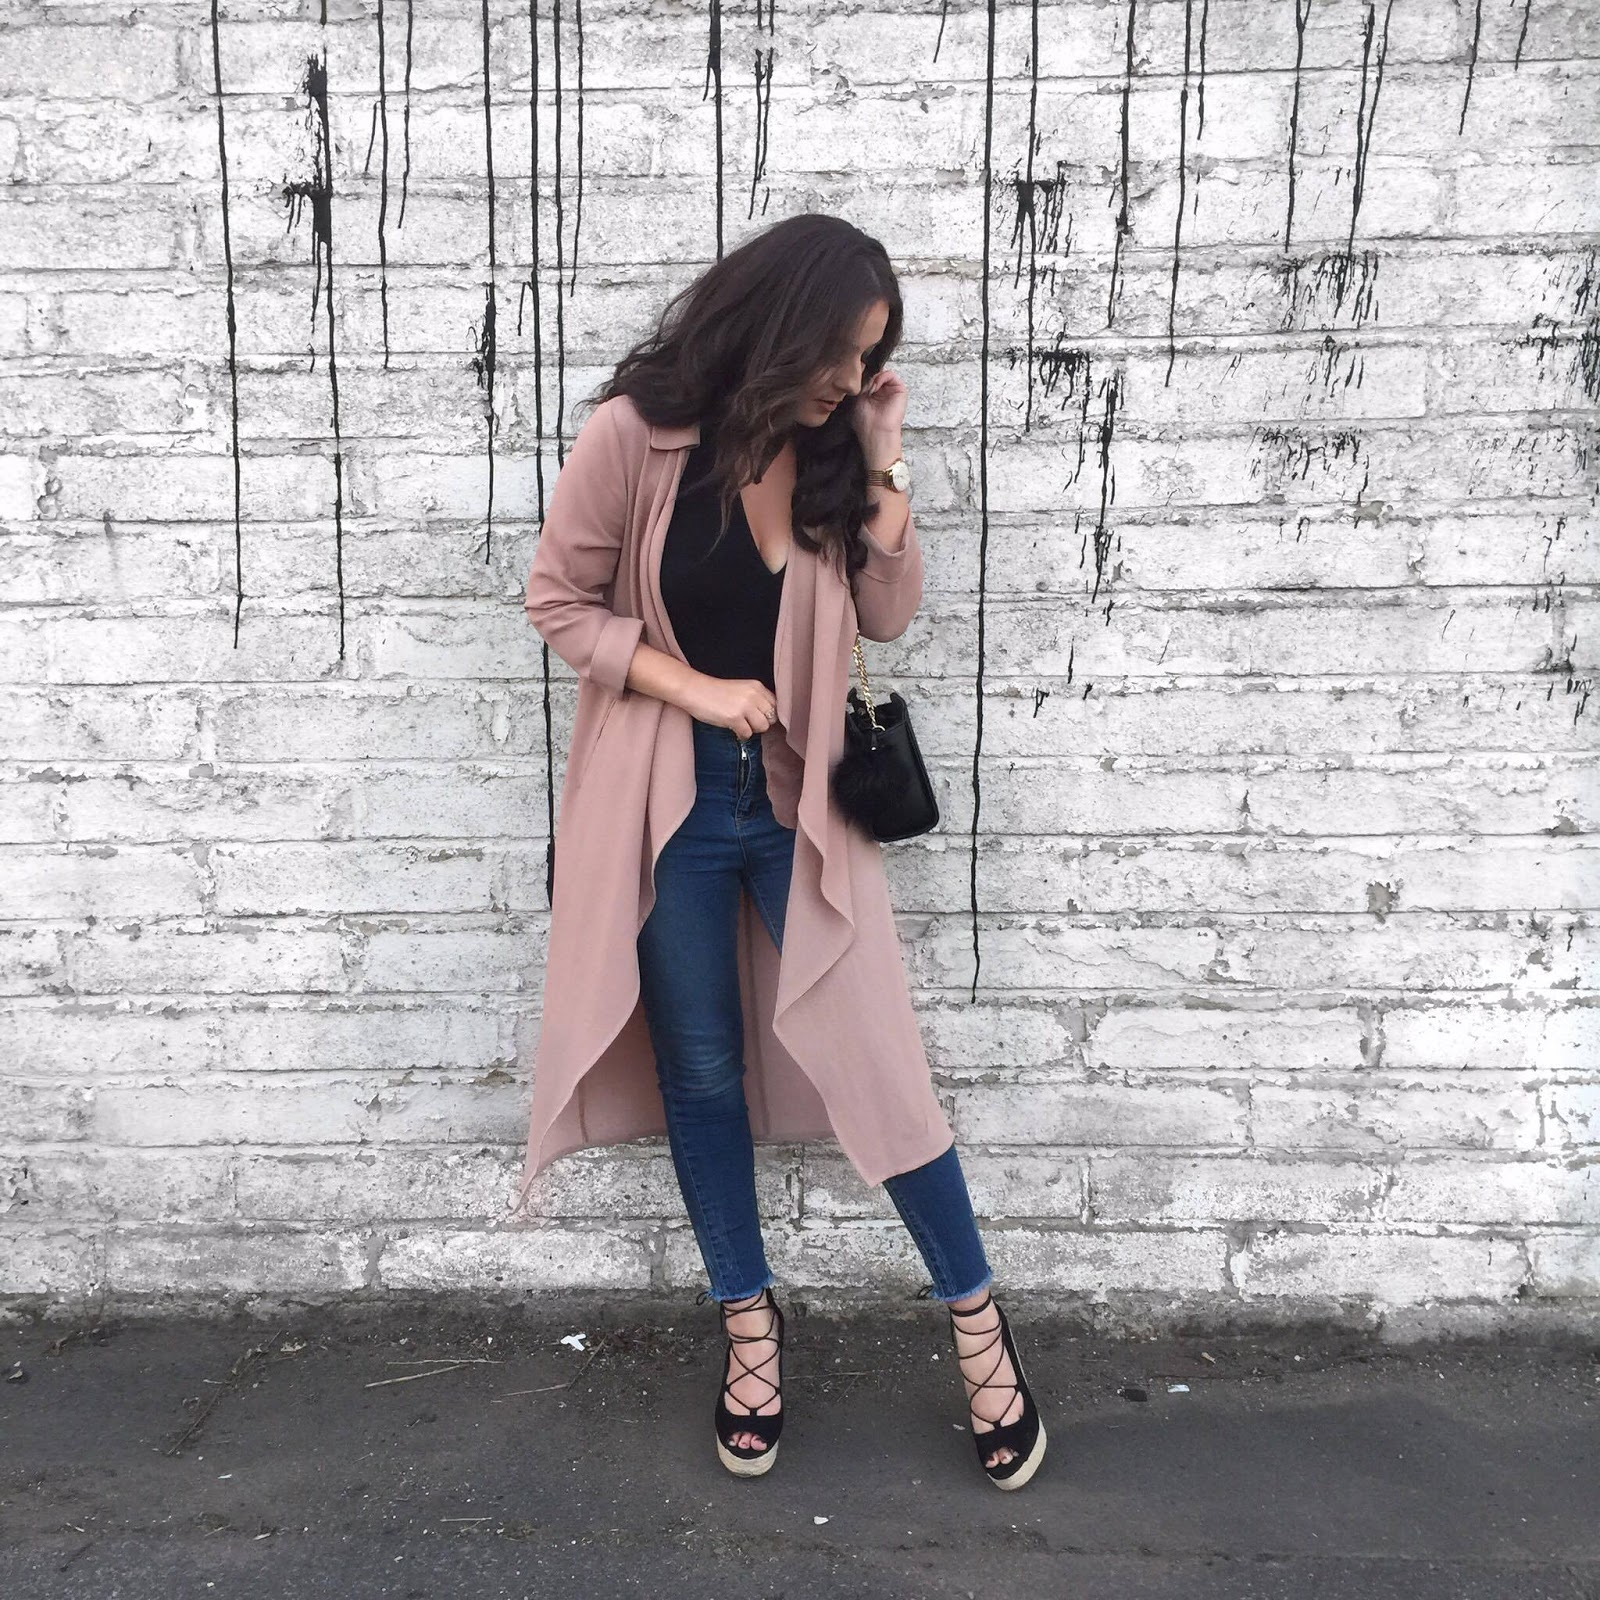 Fashion Blogger Ellie Rees Wearing Waterfall Primark Jacket